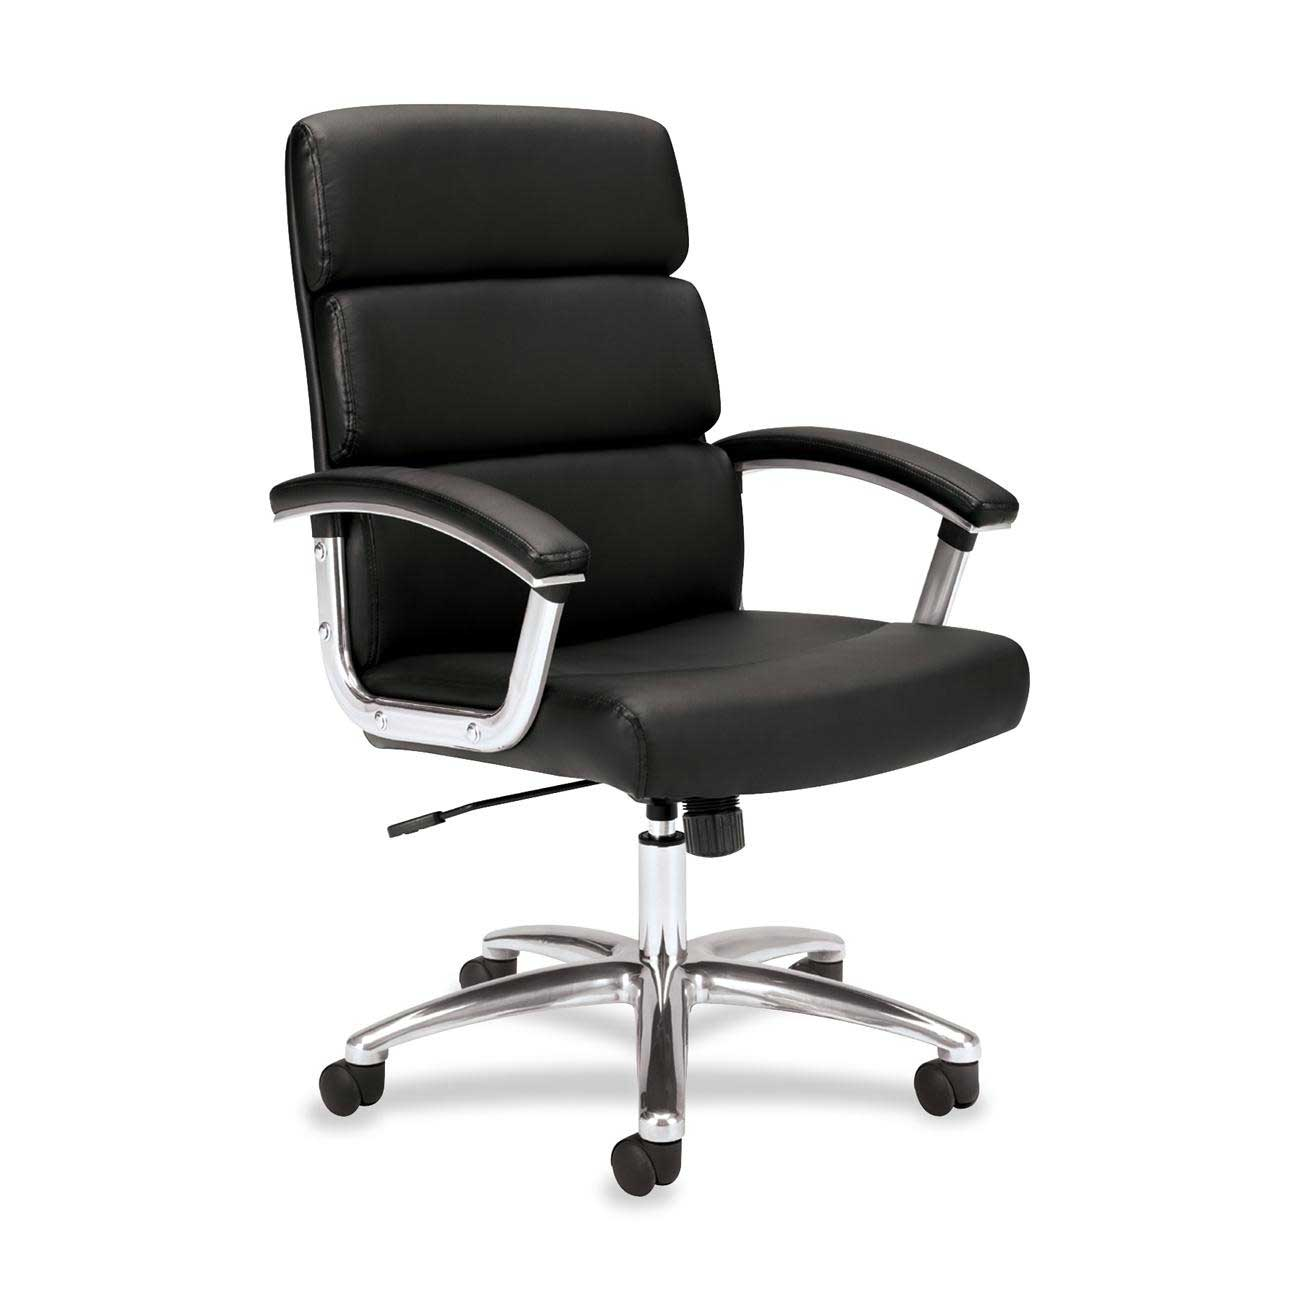 Basyx Black Executive Adjustable Height Chair